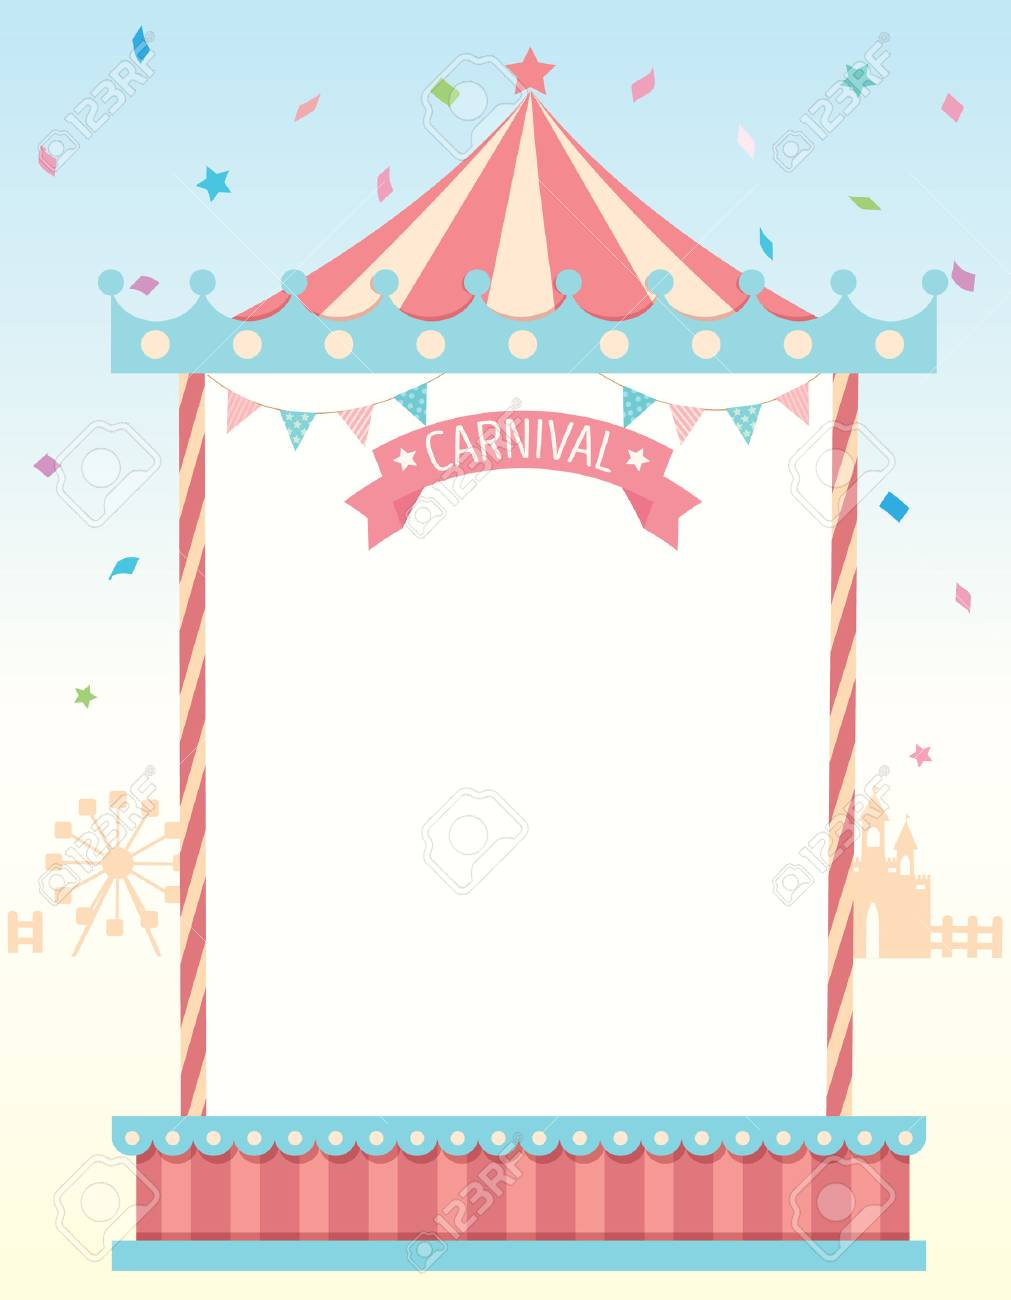 Illustration Vector Of Circus Template Frame For Carnival Festival ...